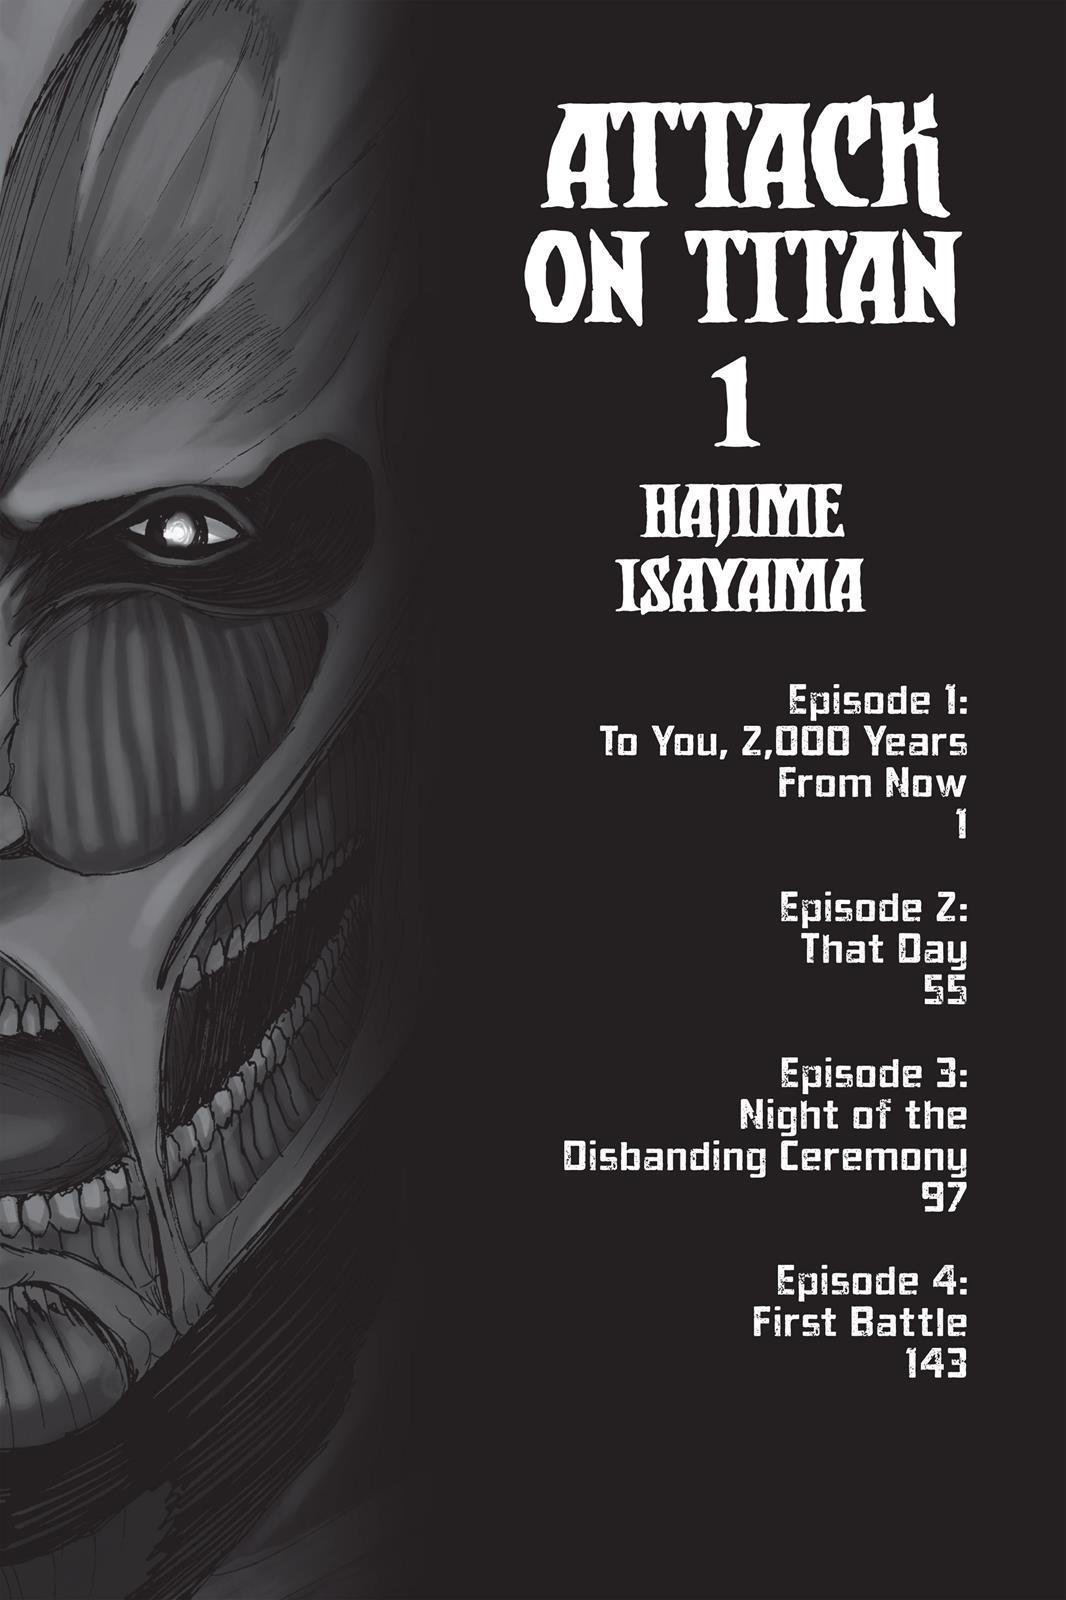 Attack On Titan, Episode 1 image 005